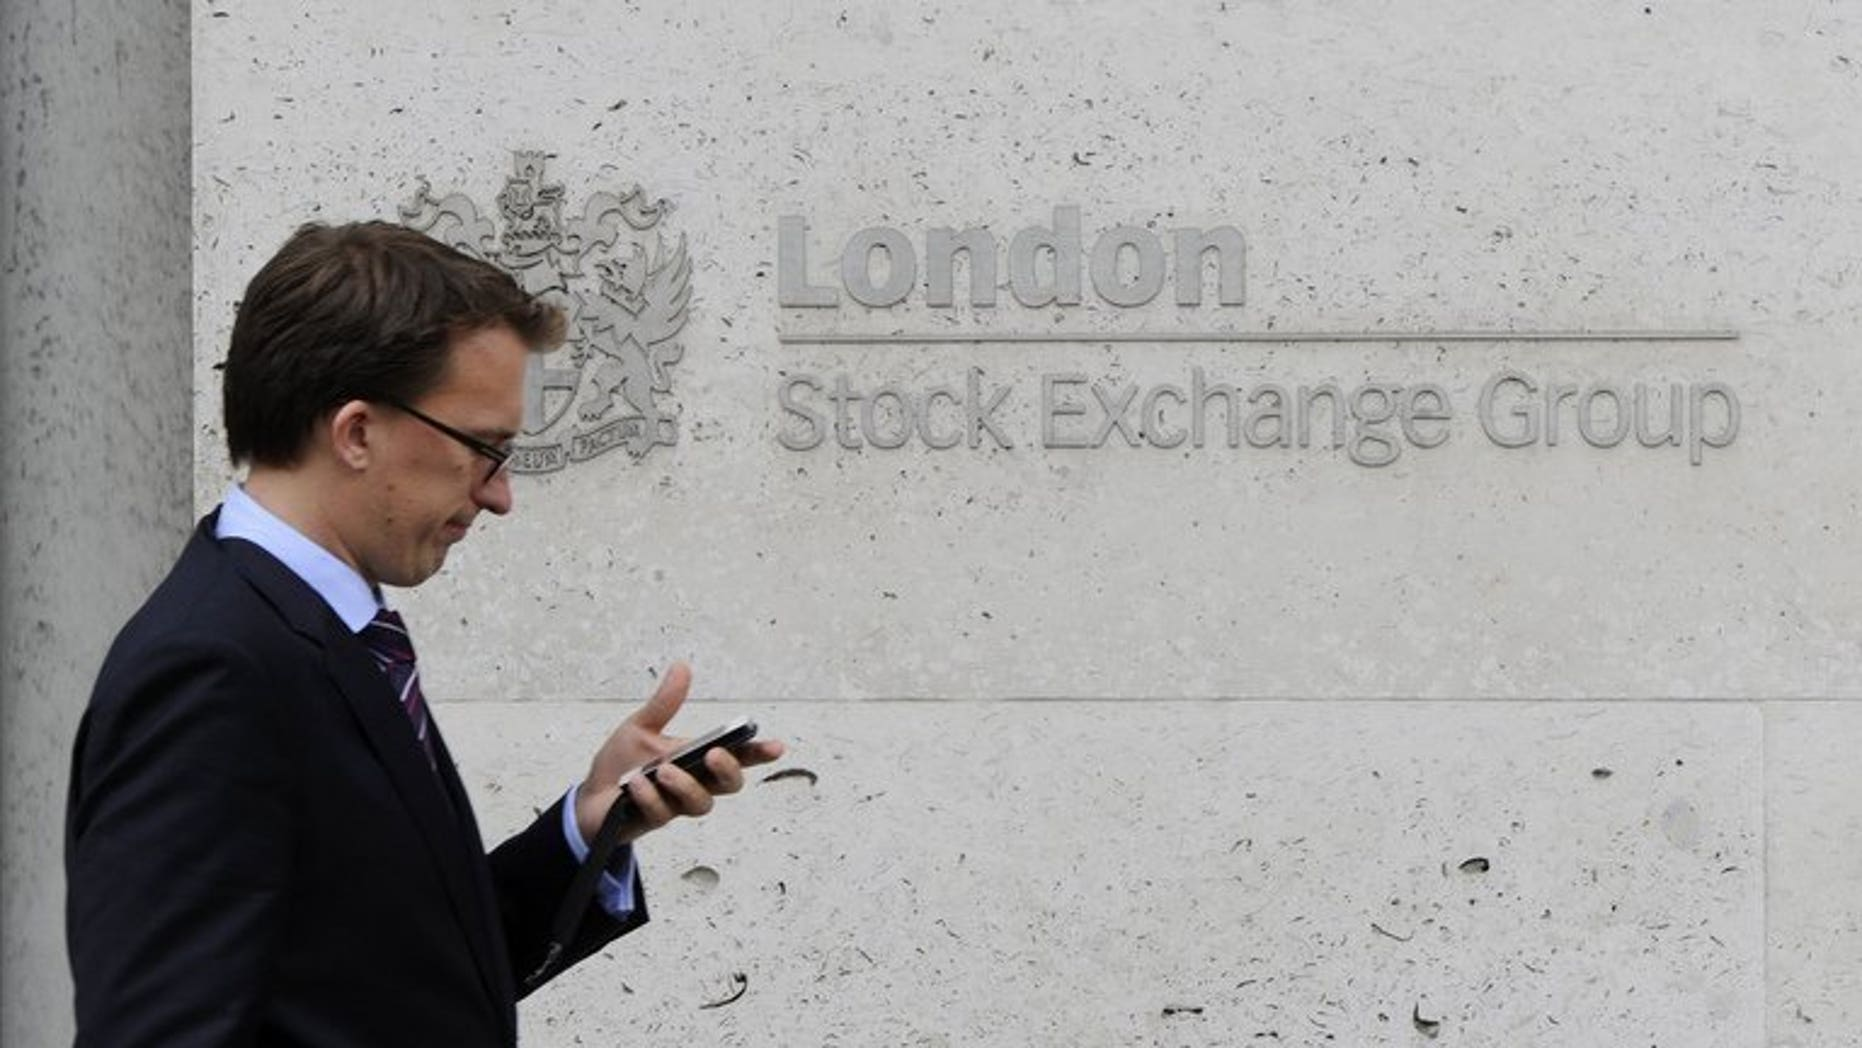 A man walks past the London Stock Exchange in central London on September 22, 2011. London shares closed higher on Tuesday boosted by better-than-expected earnings from US aluminium giant Alcoa and with the eurozone agreeing to release billions of euros in fresh aid for Greece, dealers said.